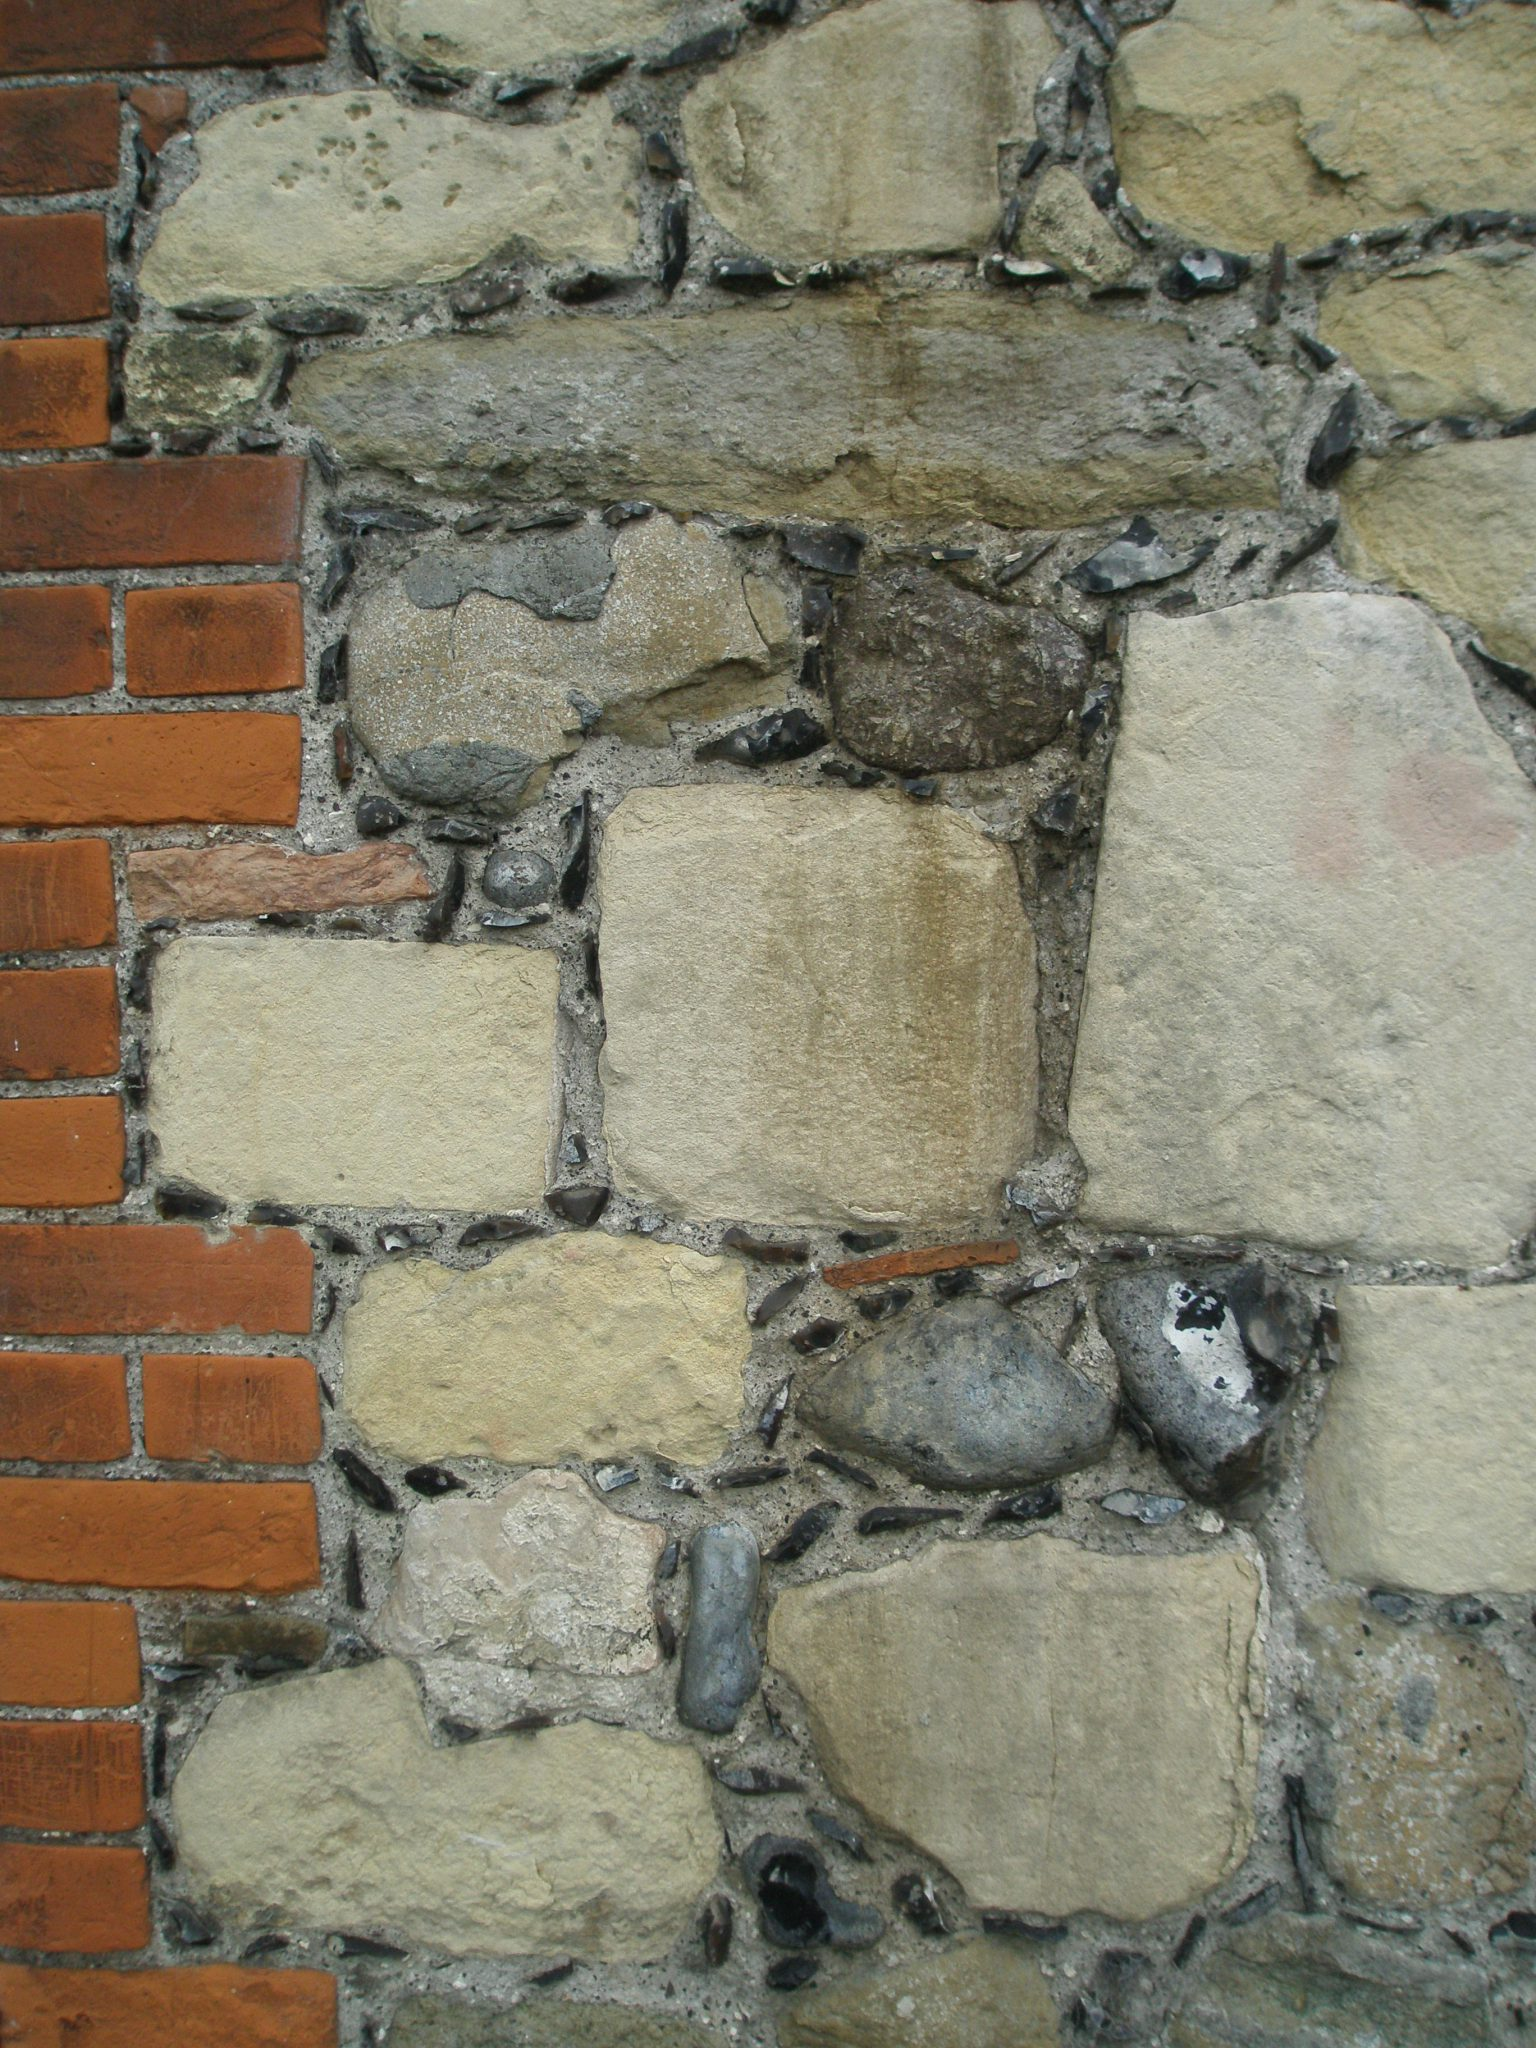 At the Main Entrance, I paused to admire yet another example of the Kentish-habit of combining brick, stone, and flint. This particular split-flint wall is GALETTED...so-called when those little black specks of rock are added, and used as spacers in the mortar.